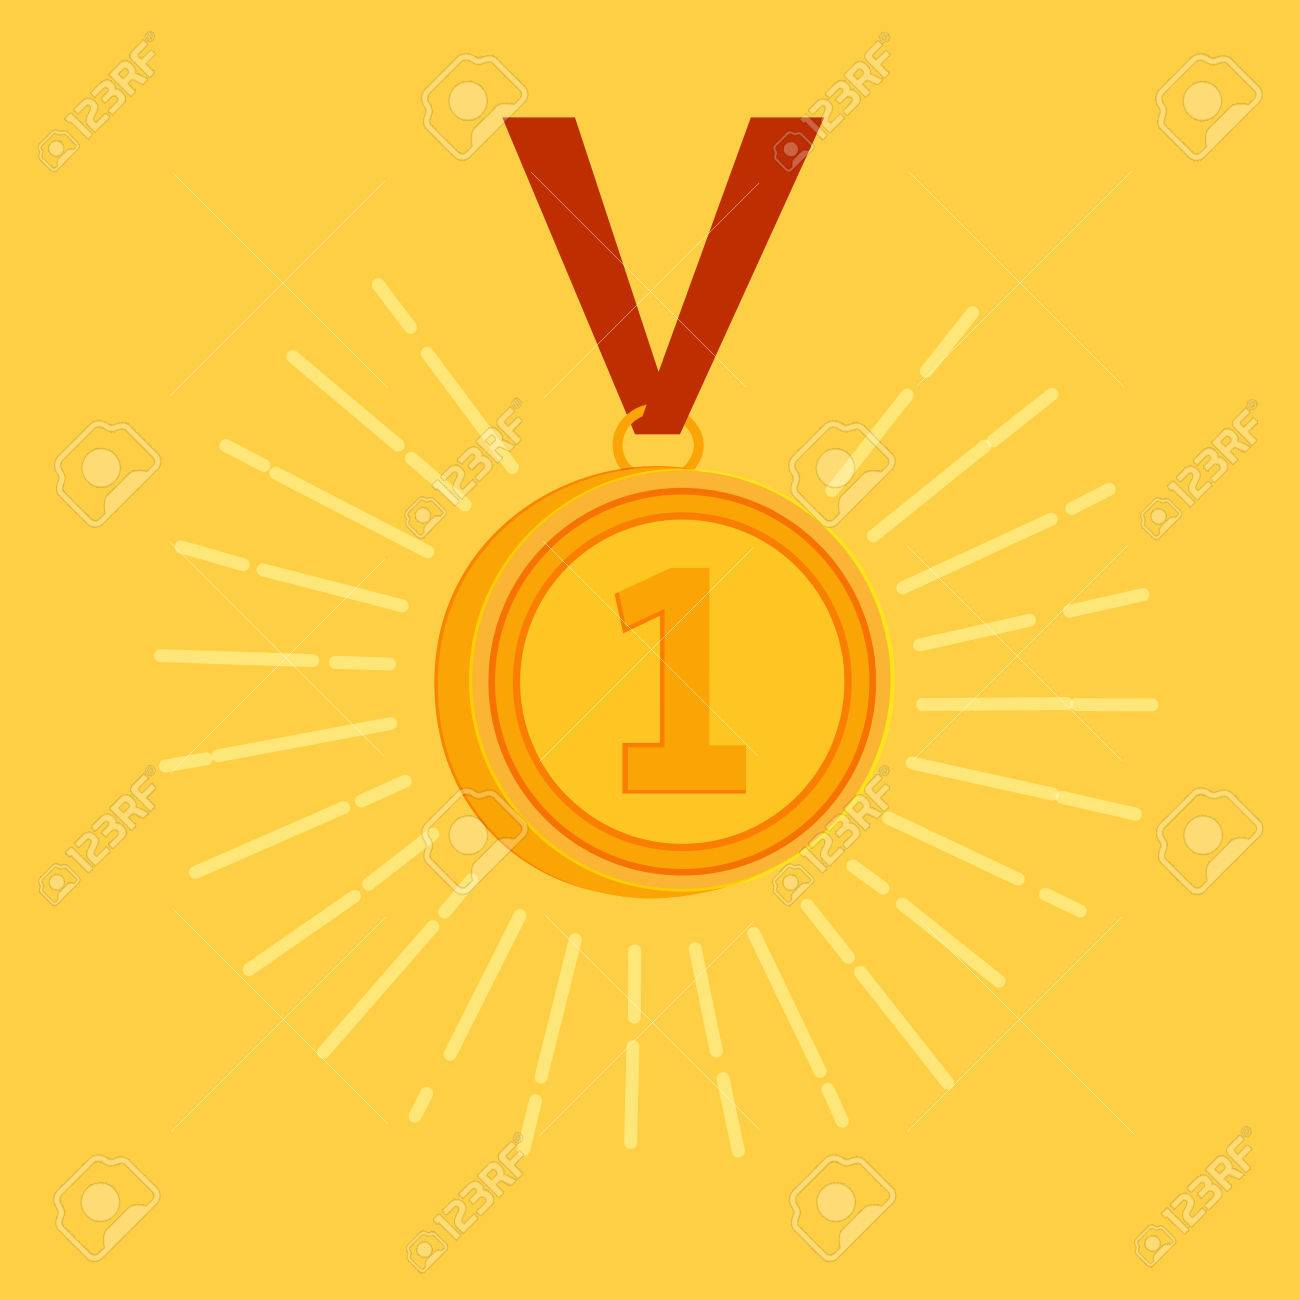 Gold Medal Award For The Winner Or Champion With A Sparkling Royalty Free Cliparts Vectors And Stock Illustration Image 38773159